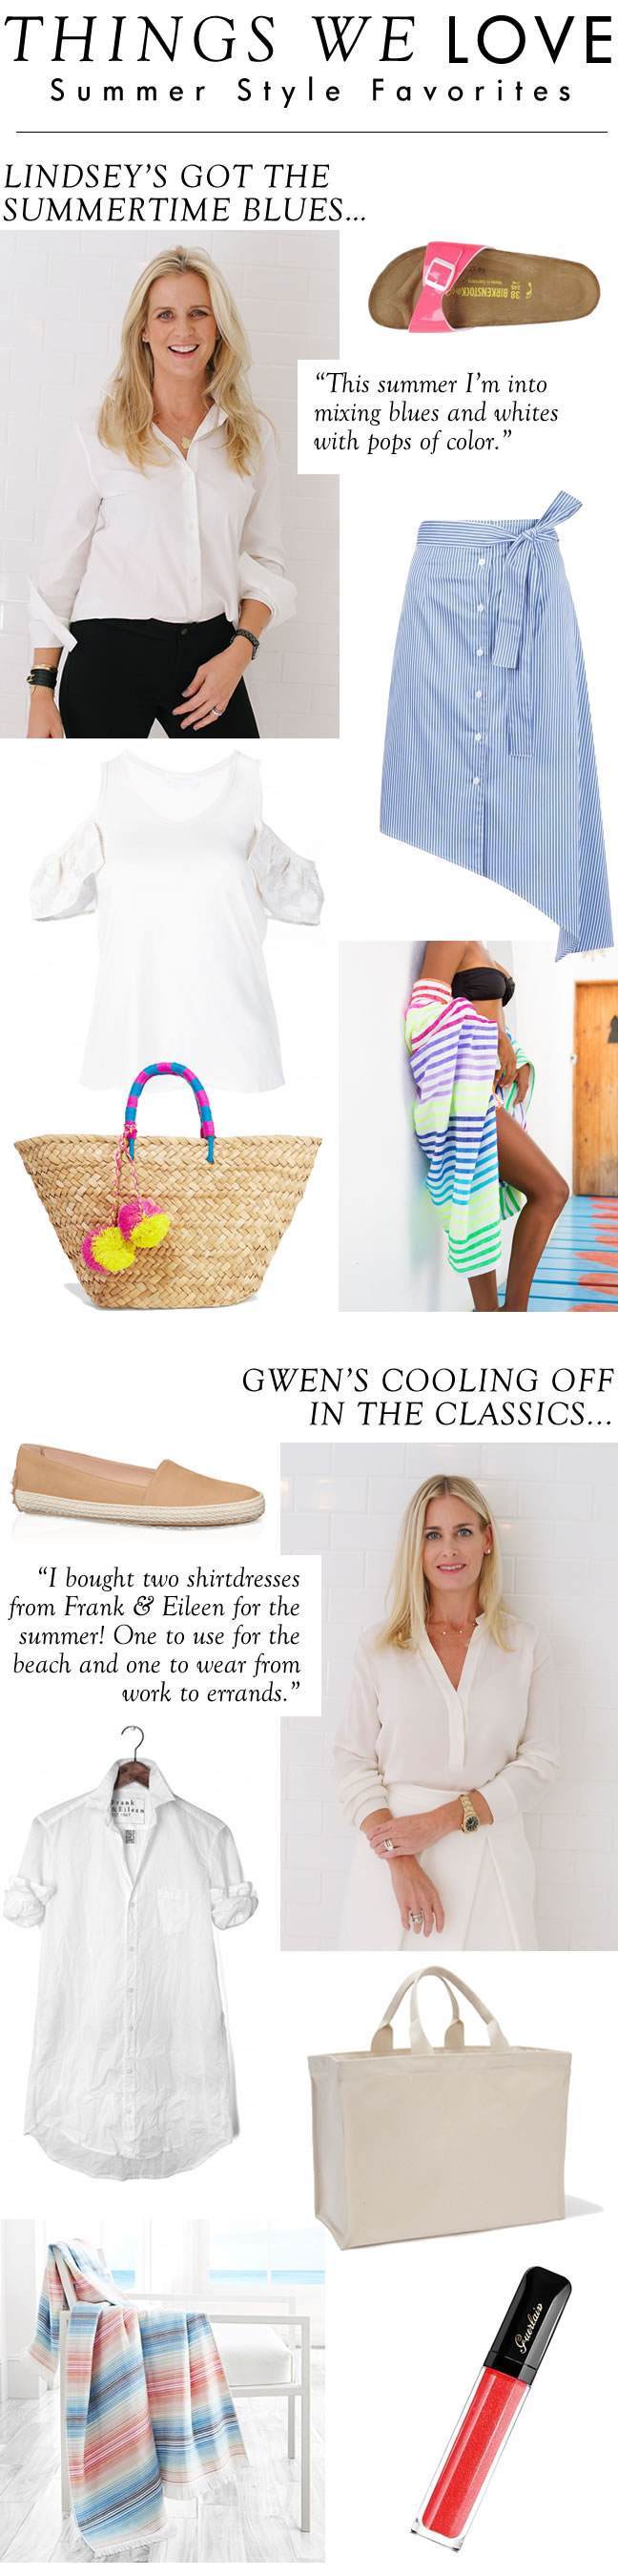 Summer fun isn't exclusive to beach days and pool parties. In fact, most of the excitement happens within our wardrobes! From playing with pops of color to mixing and matching fabric textures, check out how Gwen and Lindsey dress for summer in New York City on the blog!